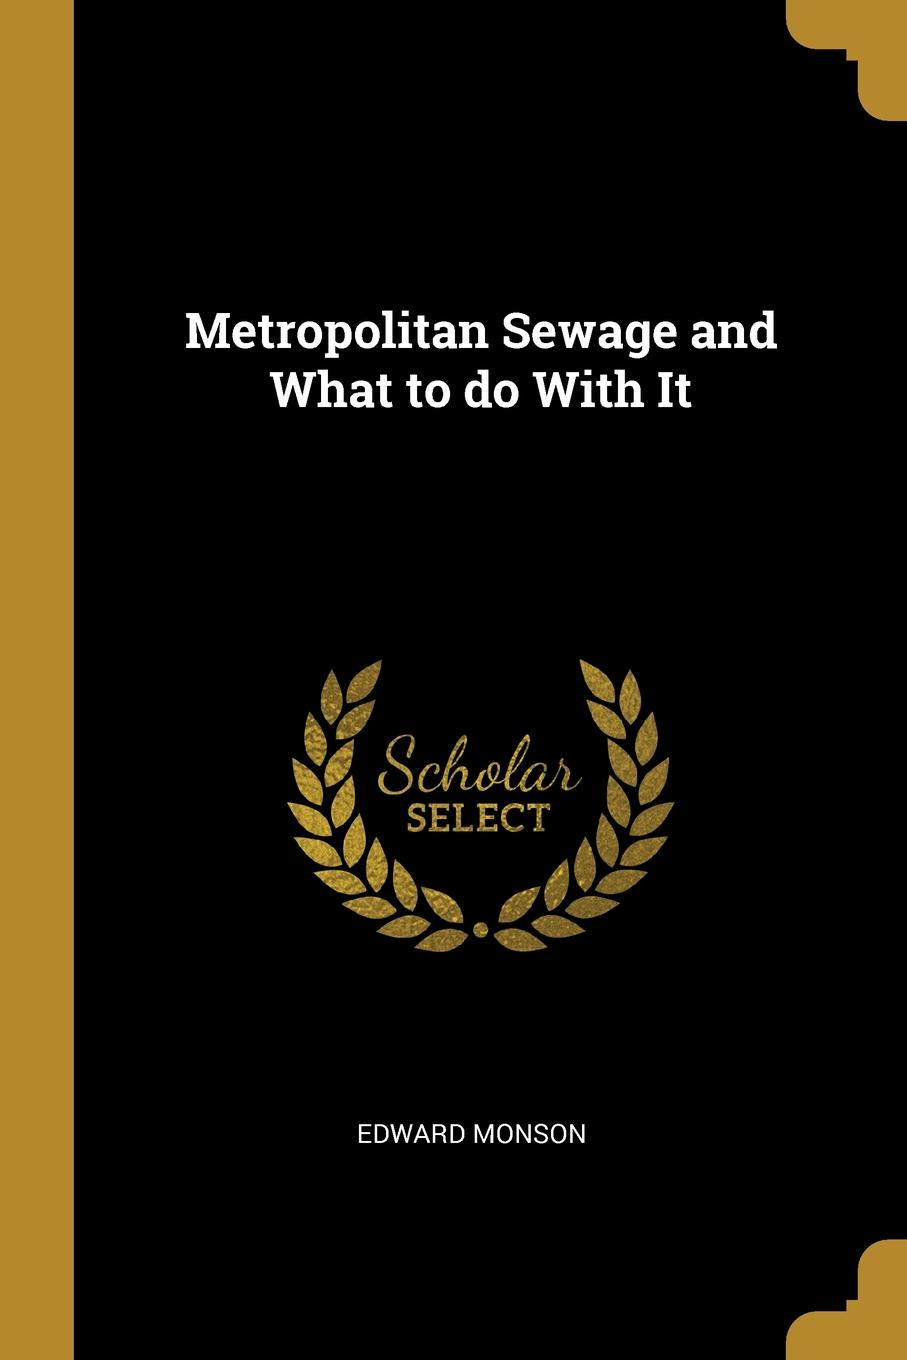 Edward Monson. Metropolitan Sewage and What to do With It